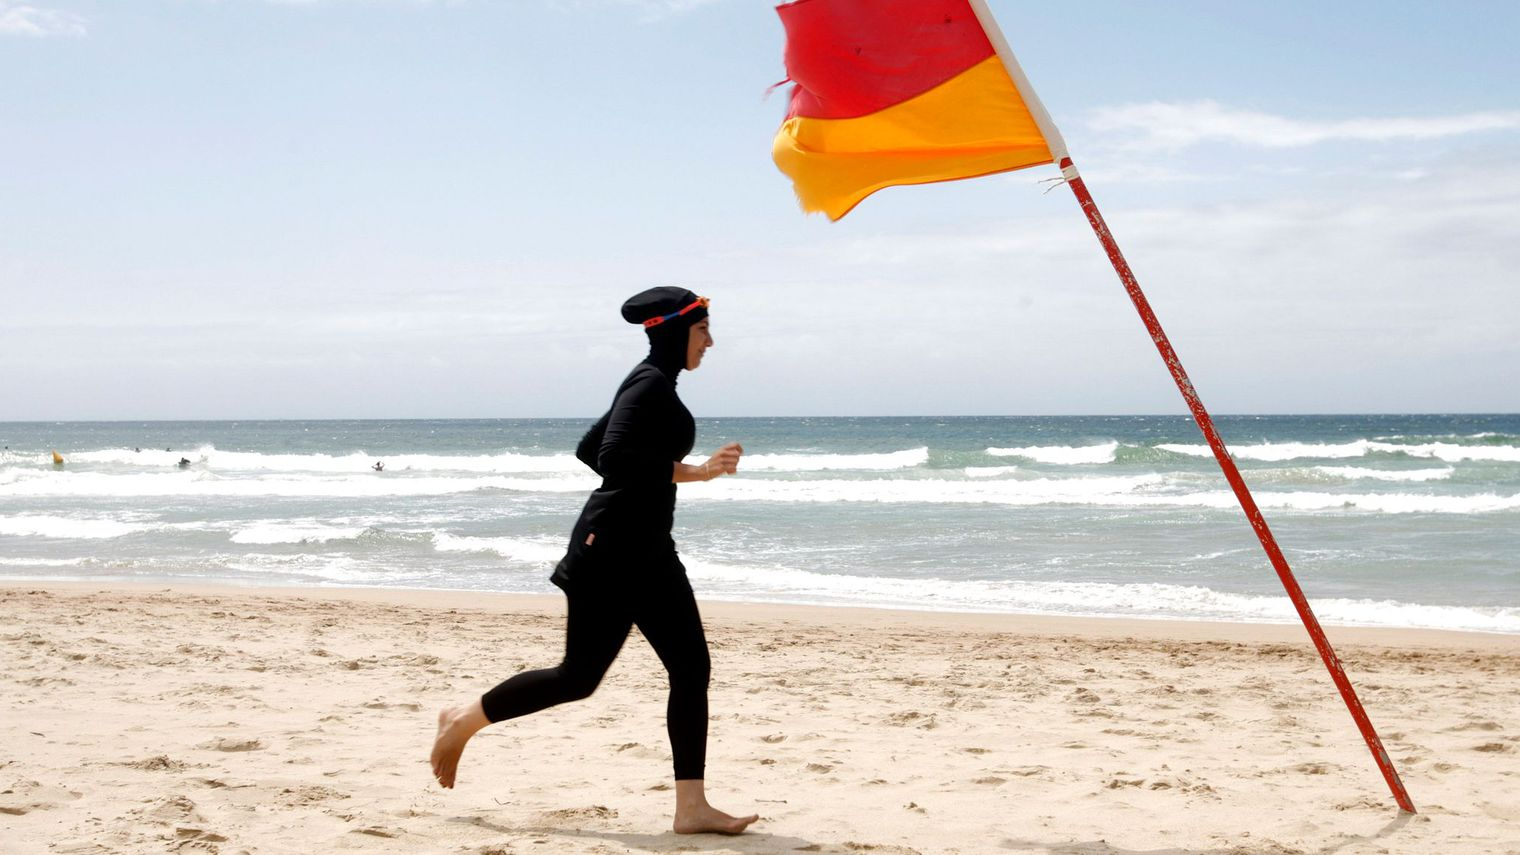 'Burkini Ban' trojan horse for banning the veil?